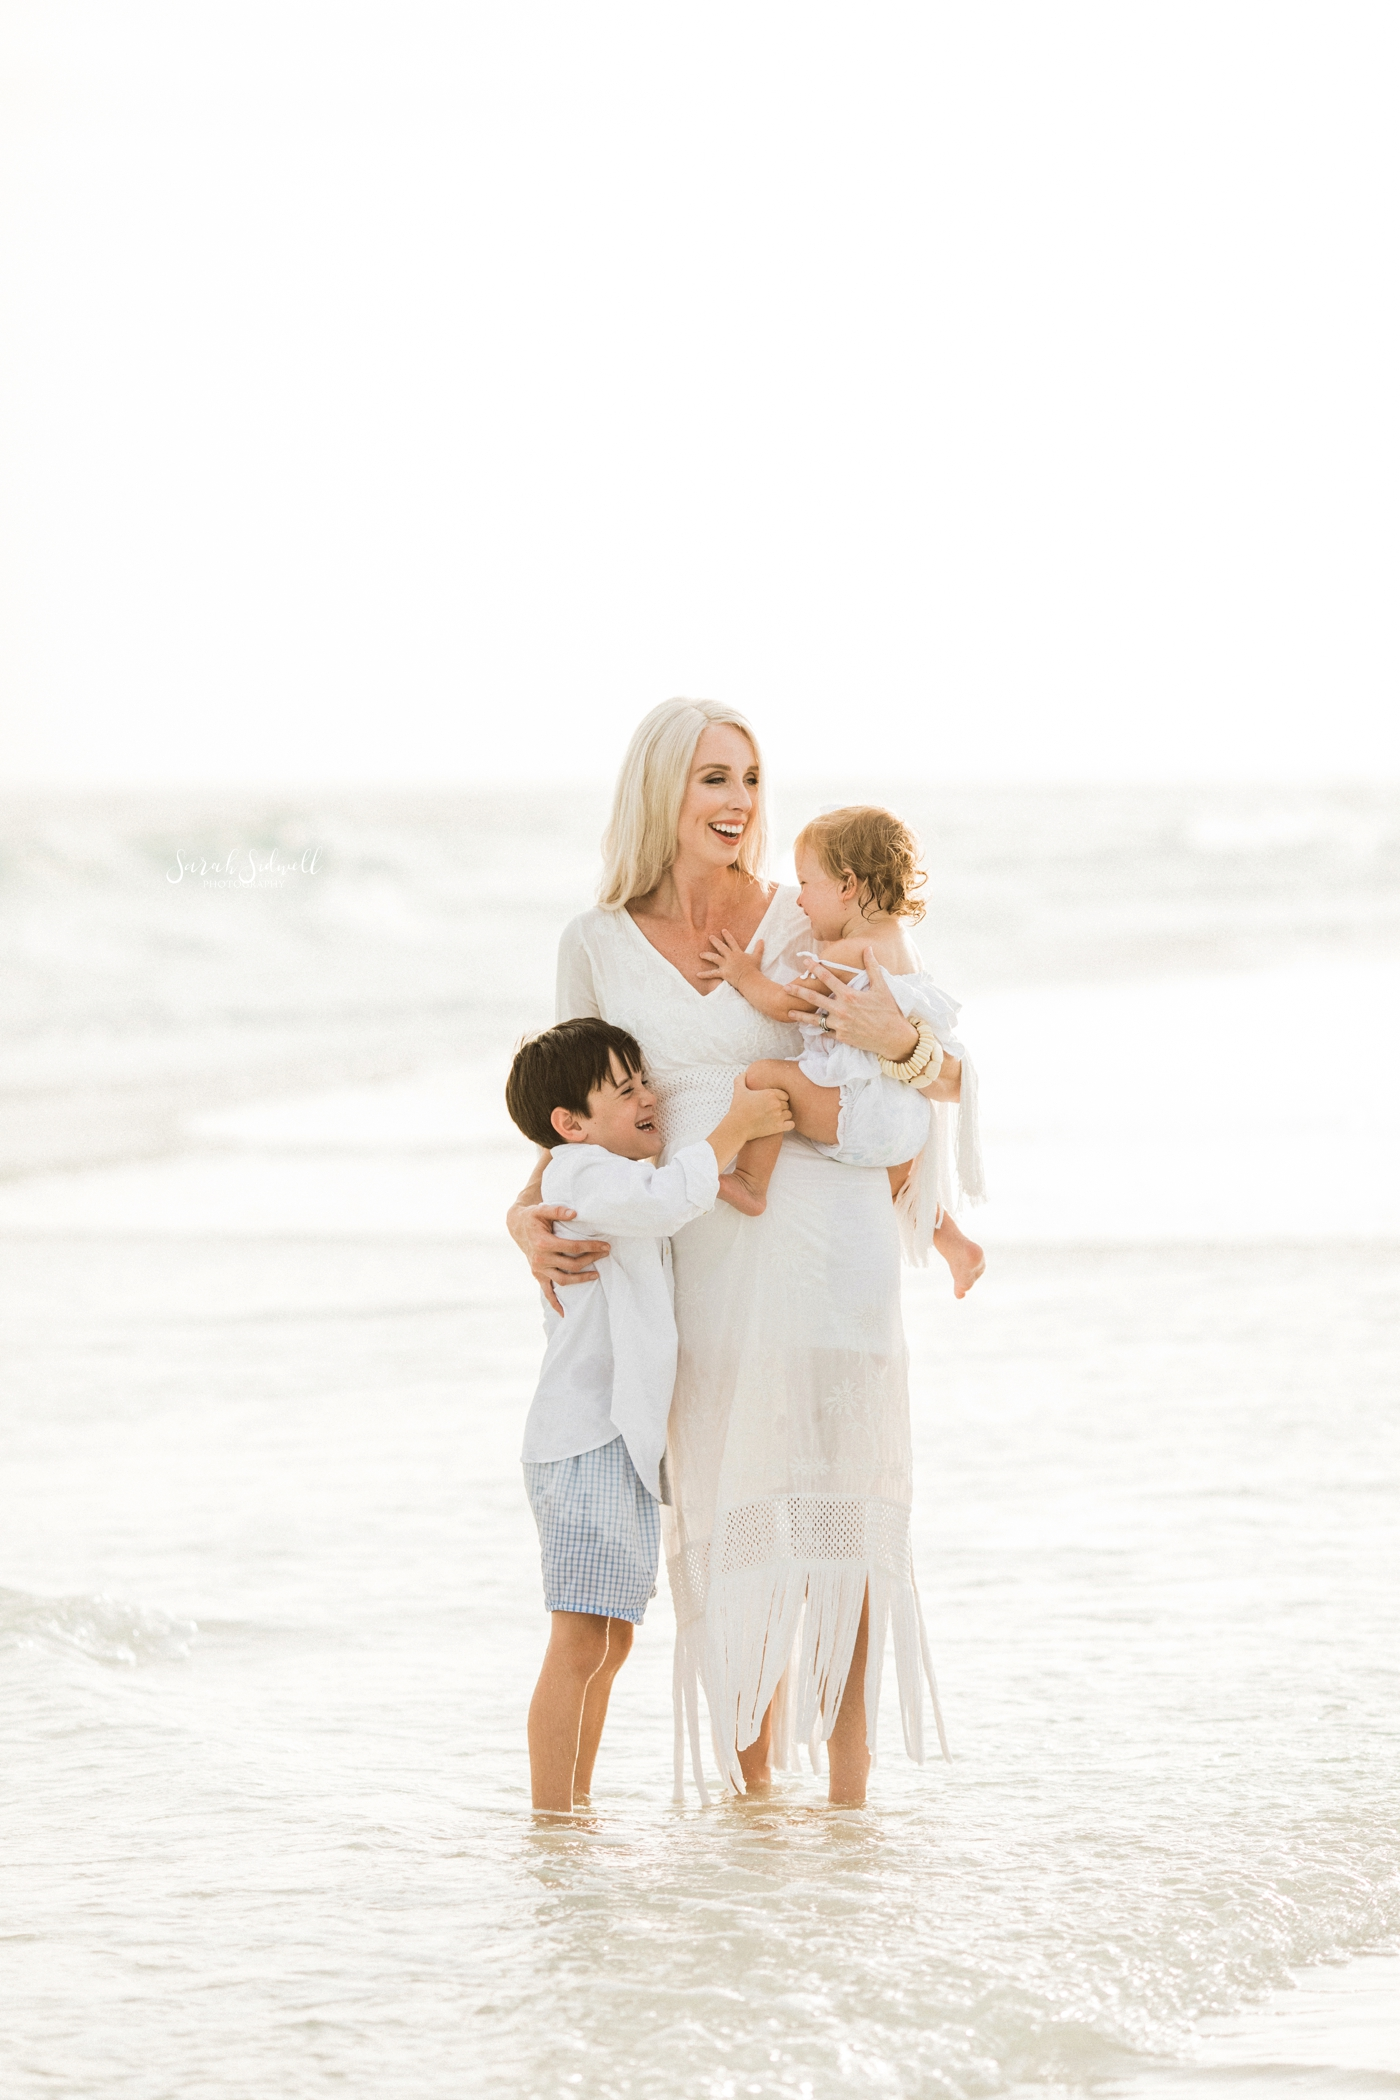 30A Family Photos | Nashville Photographer